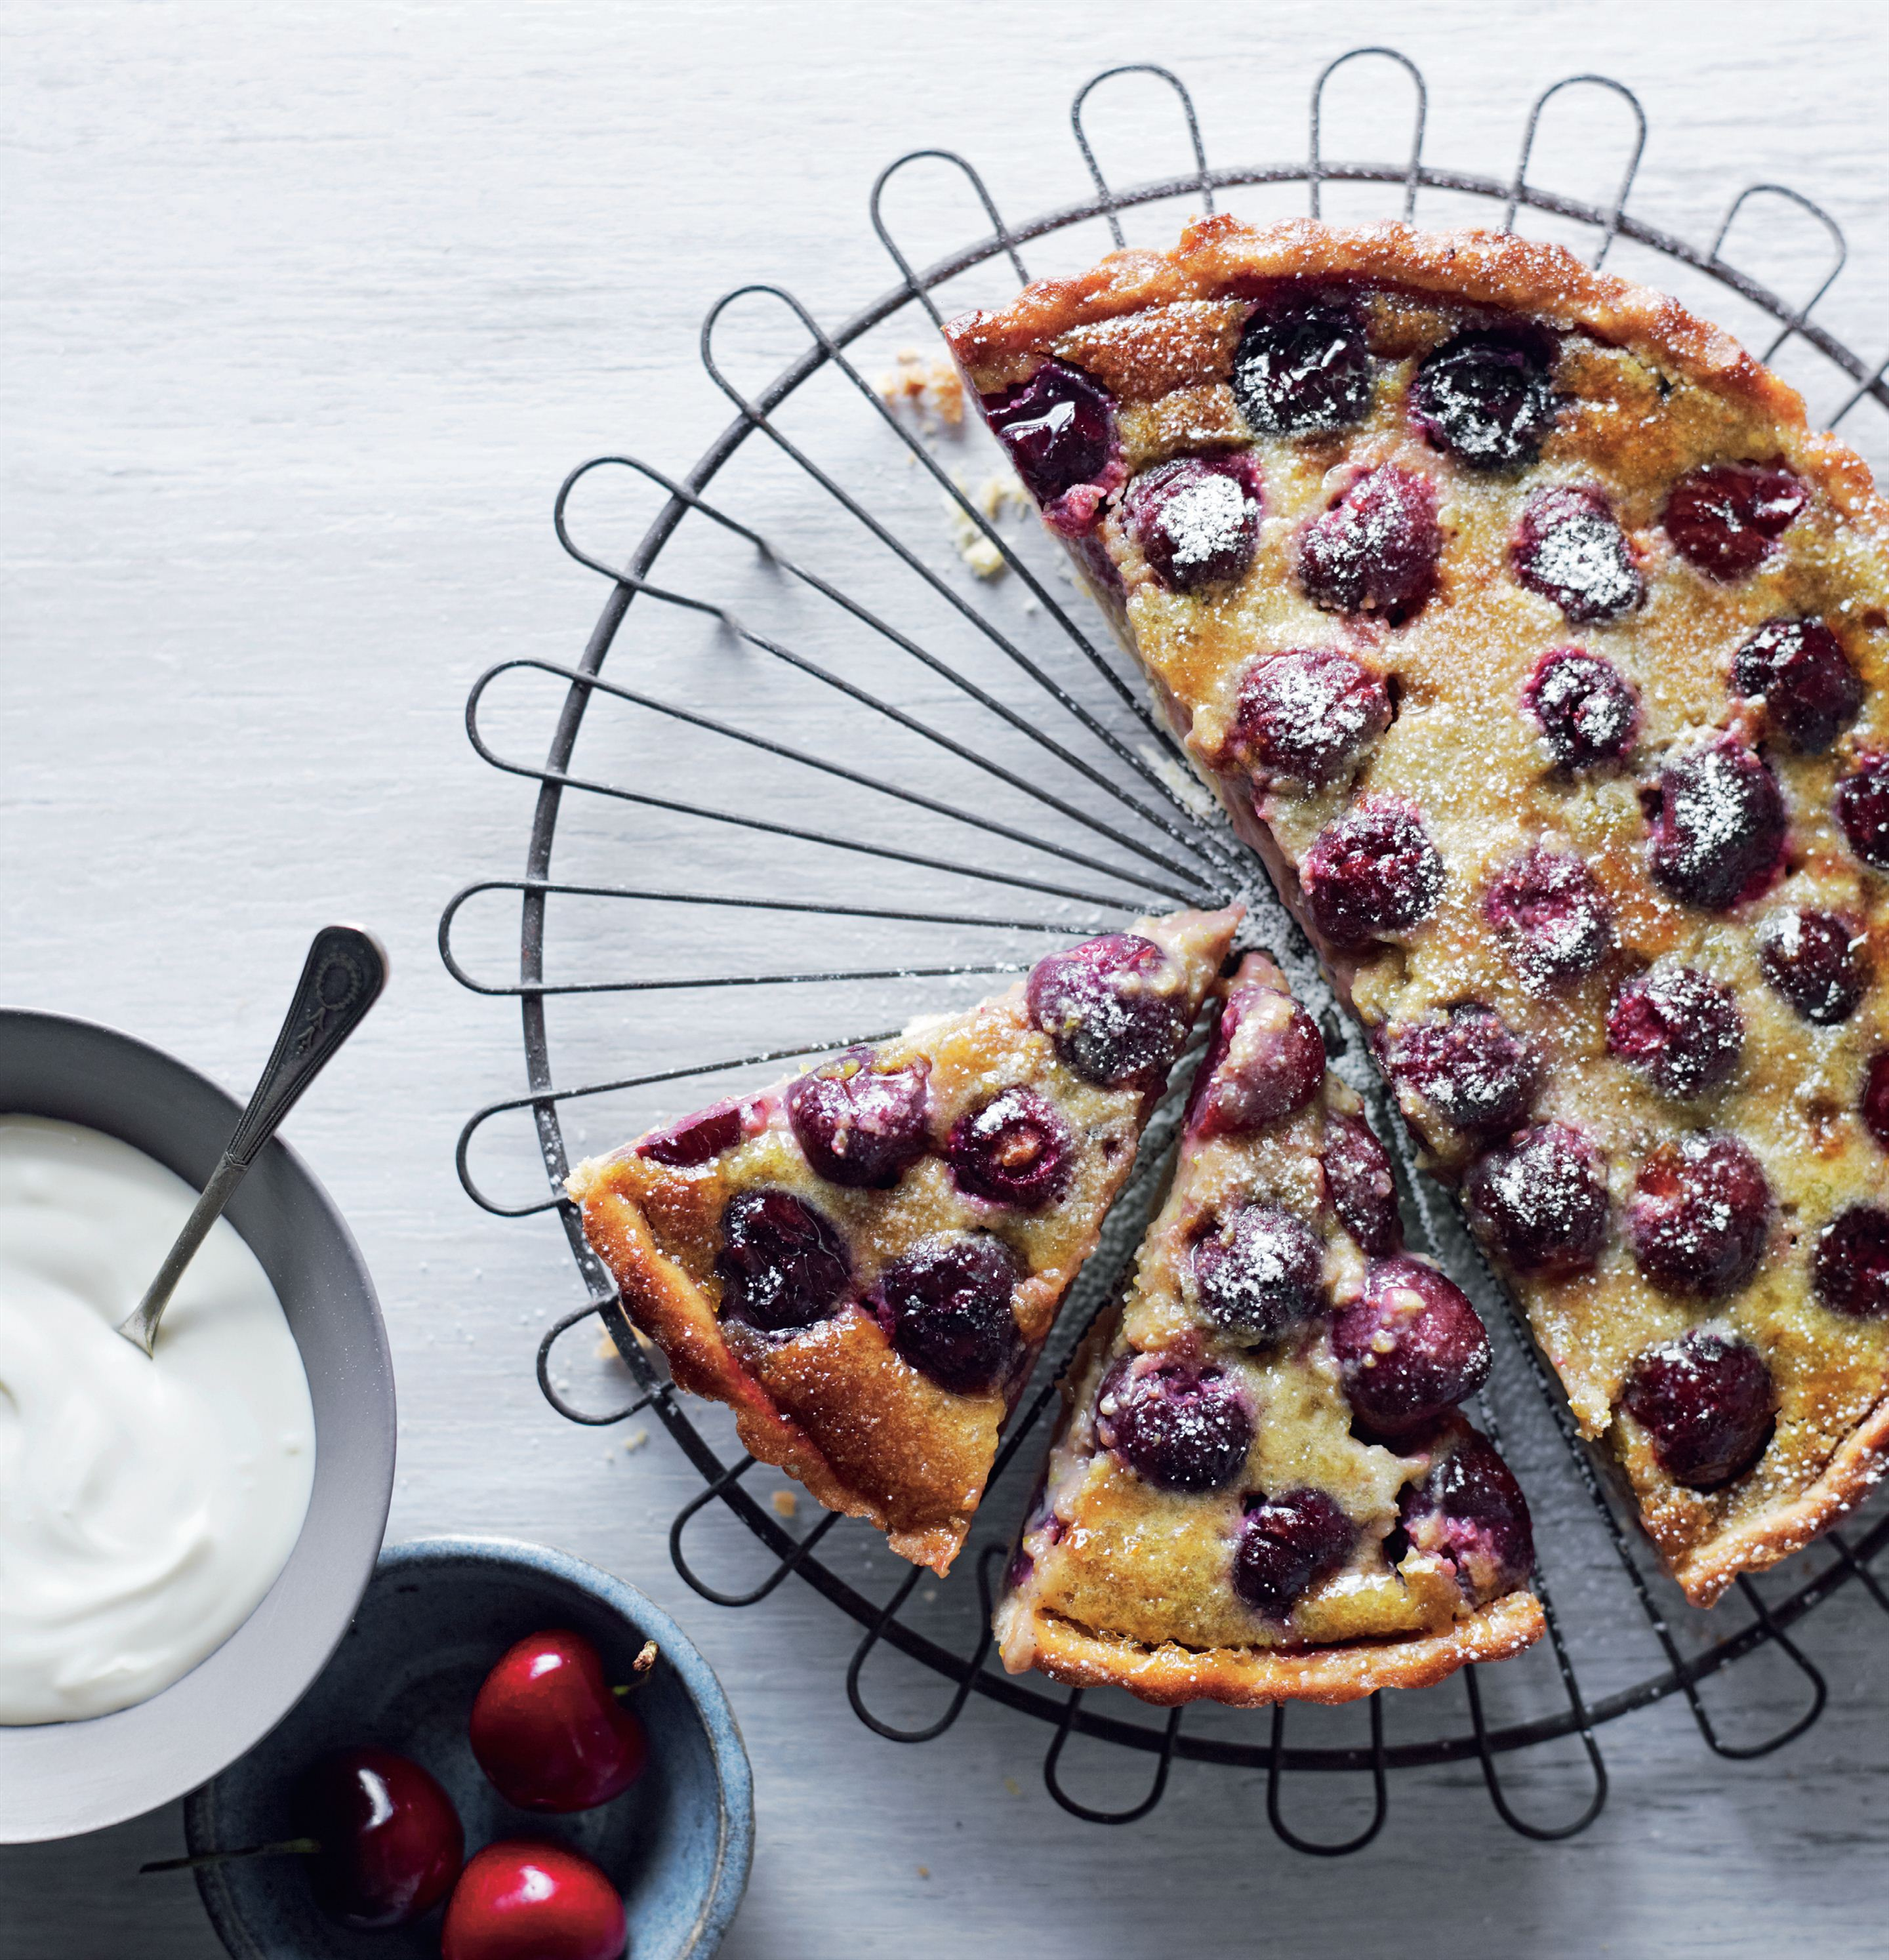 Cherry and pistachio tart